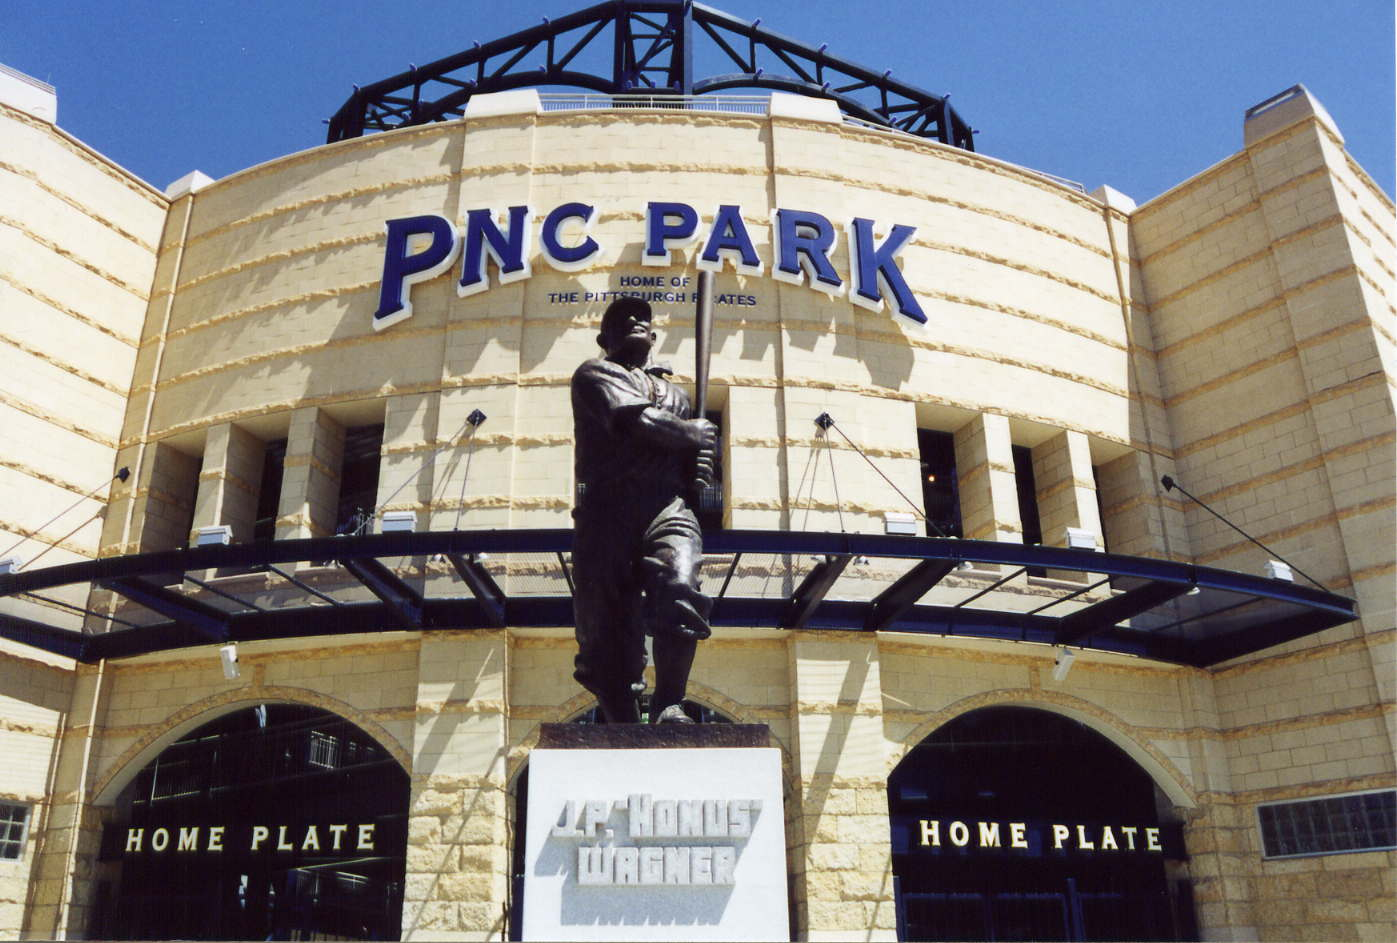 Hotels Near Pnc Park In Pittsburgh Pa